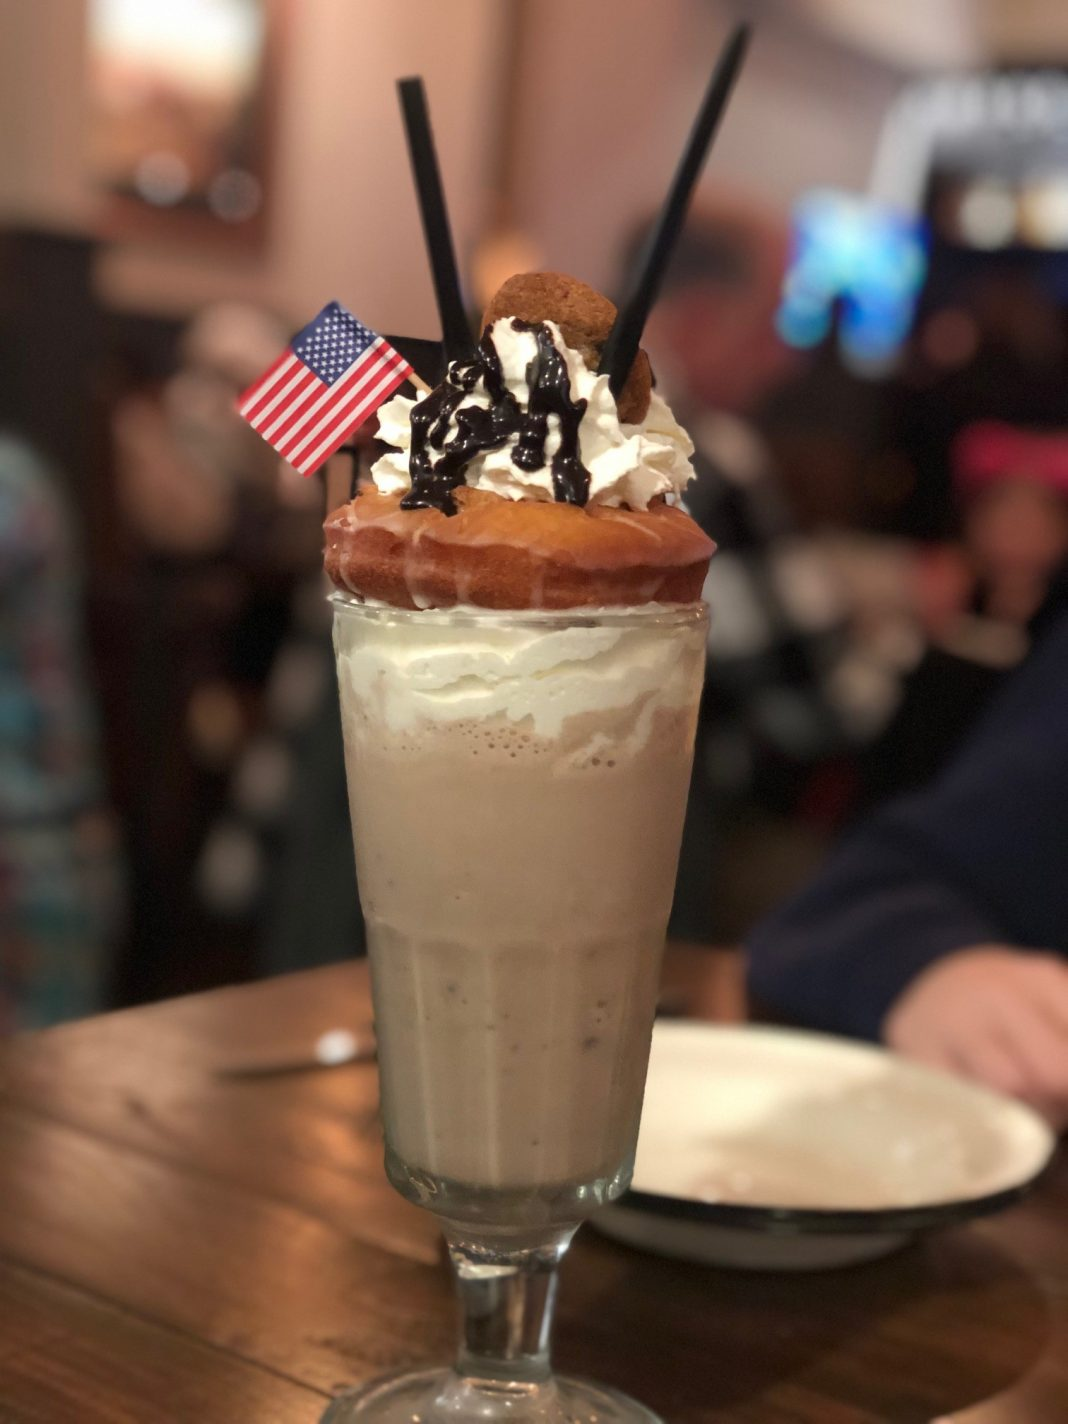 Cookie-dough ice cream, chocolate sauce, and bourbon, topped with a donut, whipped cream, a chocolate chip cookie, and chocolate sauce ($15)